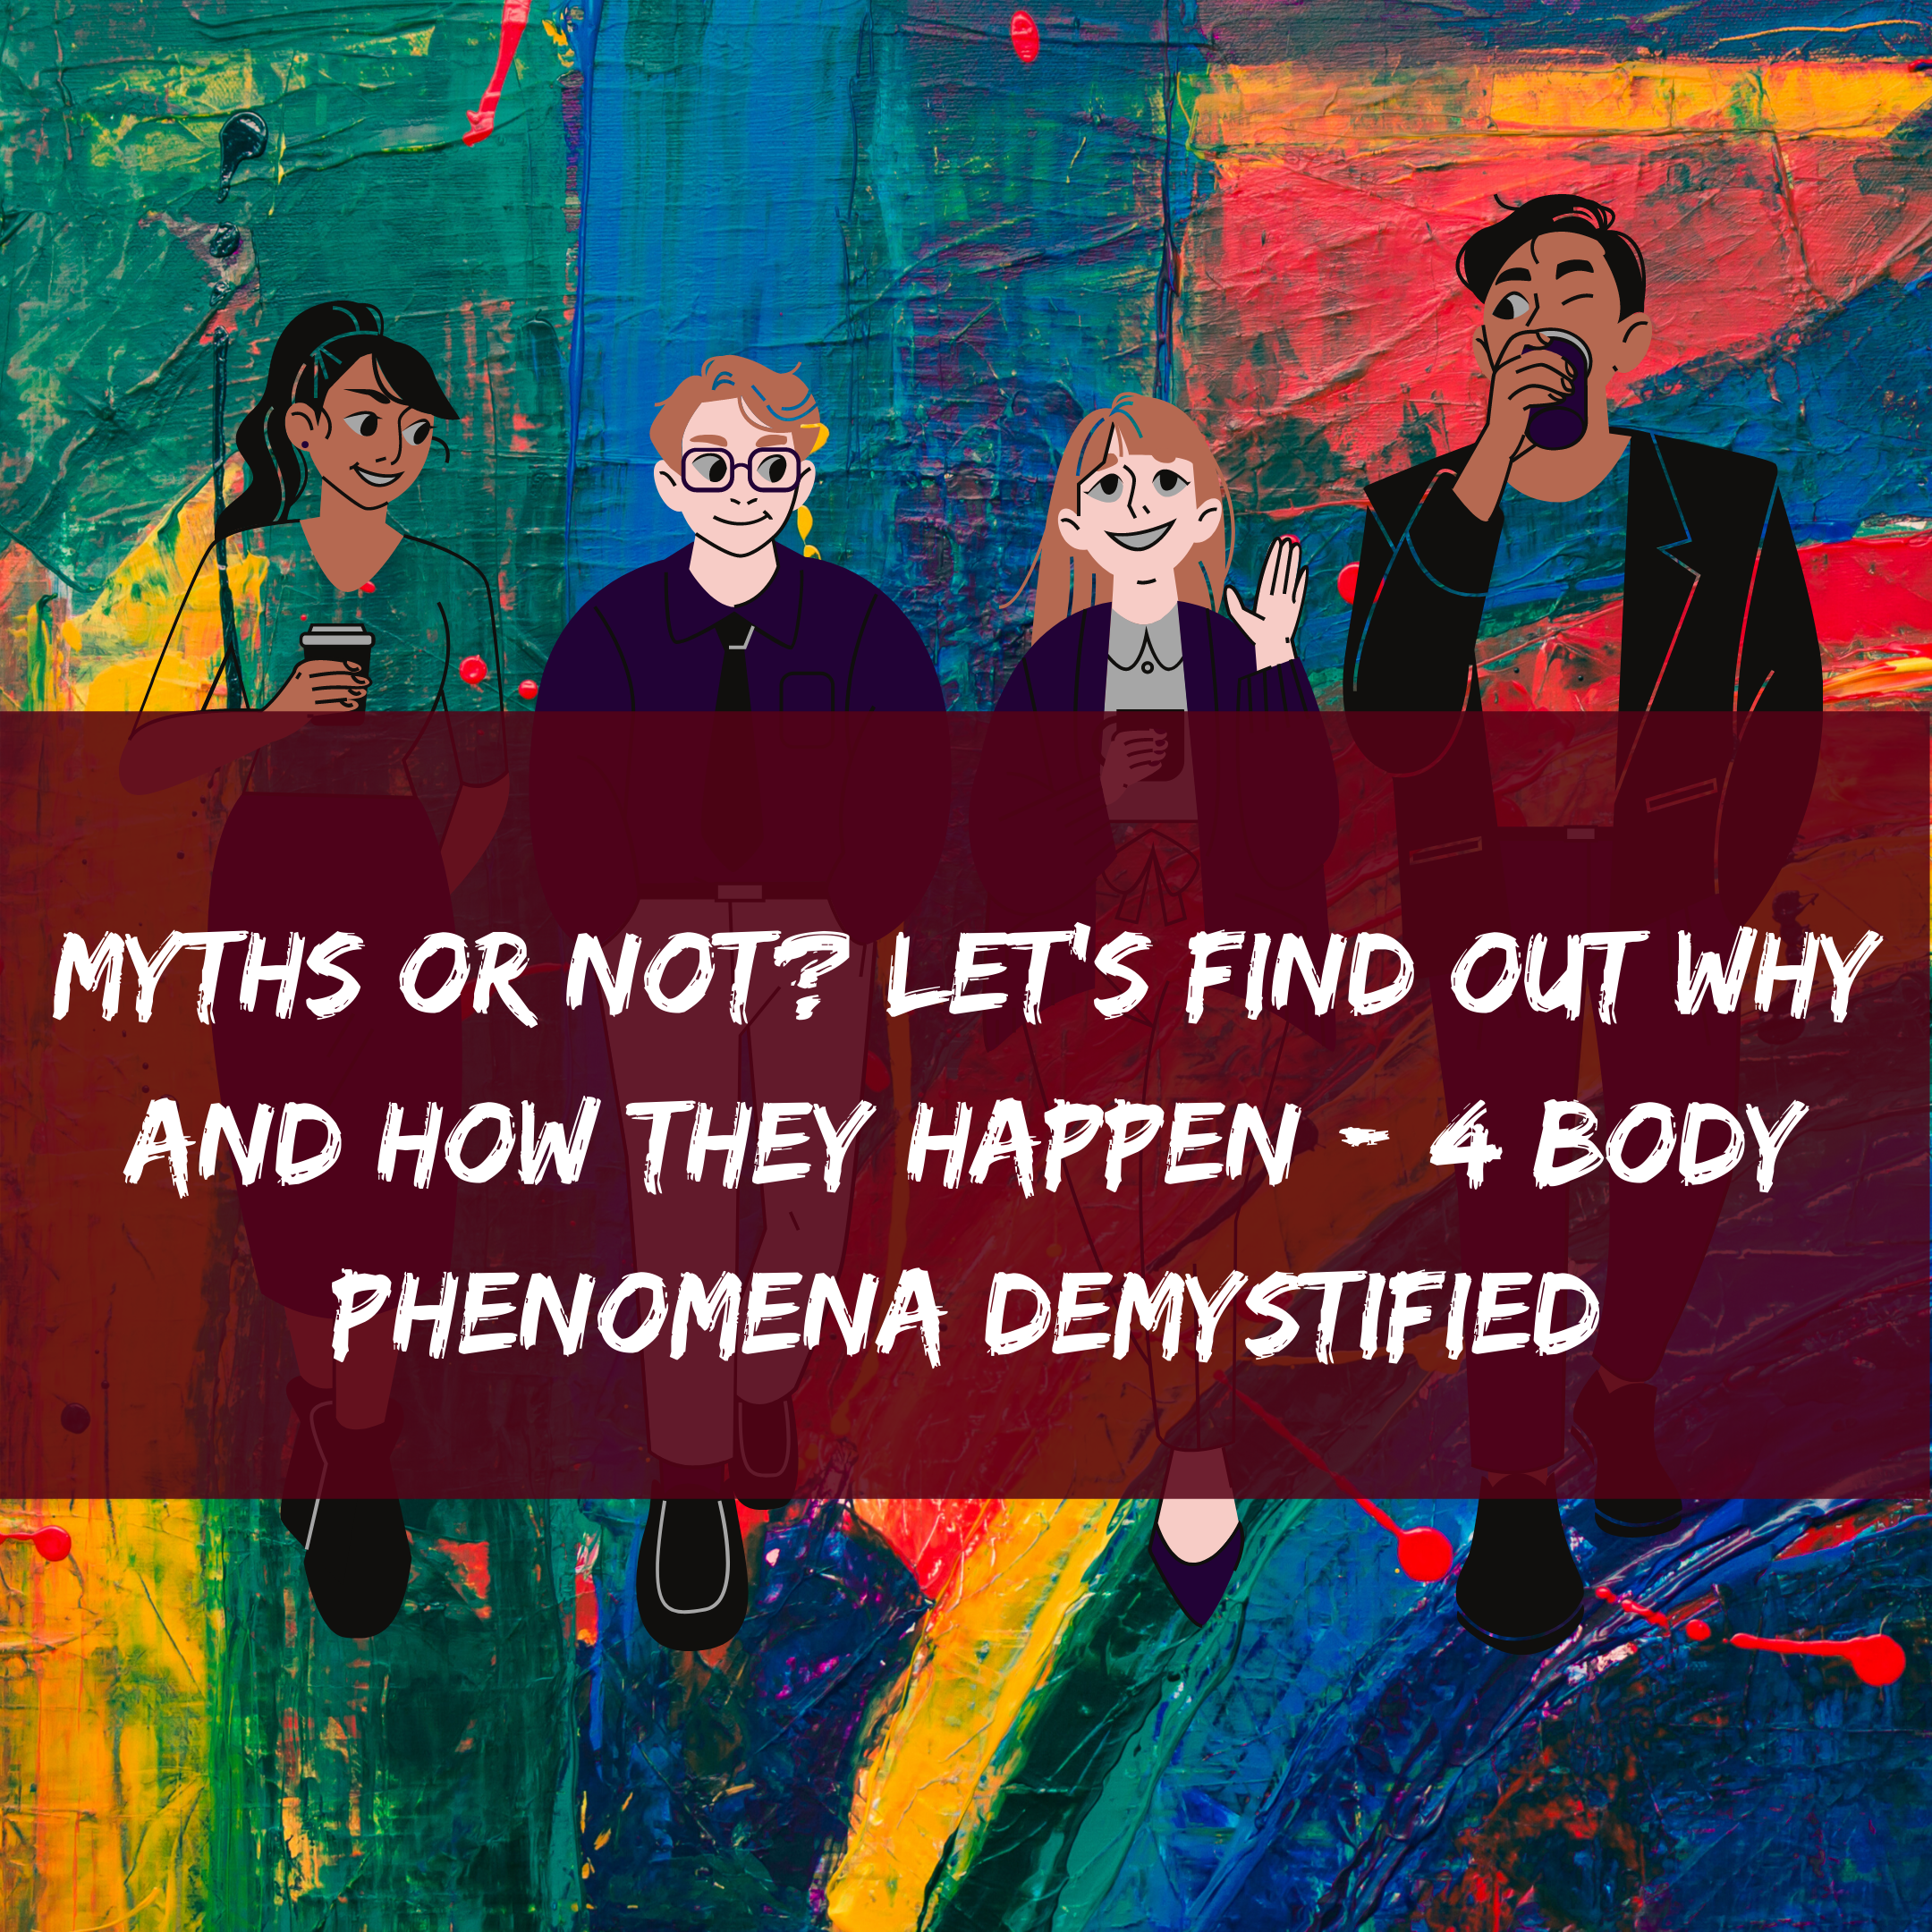 Myths or Not_ Let's Find Out Why and How They Happen – 4 Body Phenomena Demystified